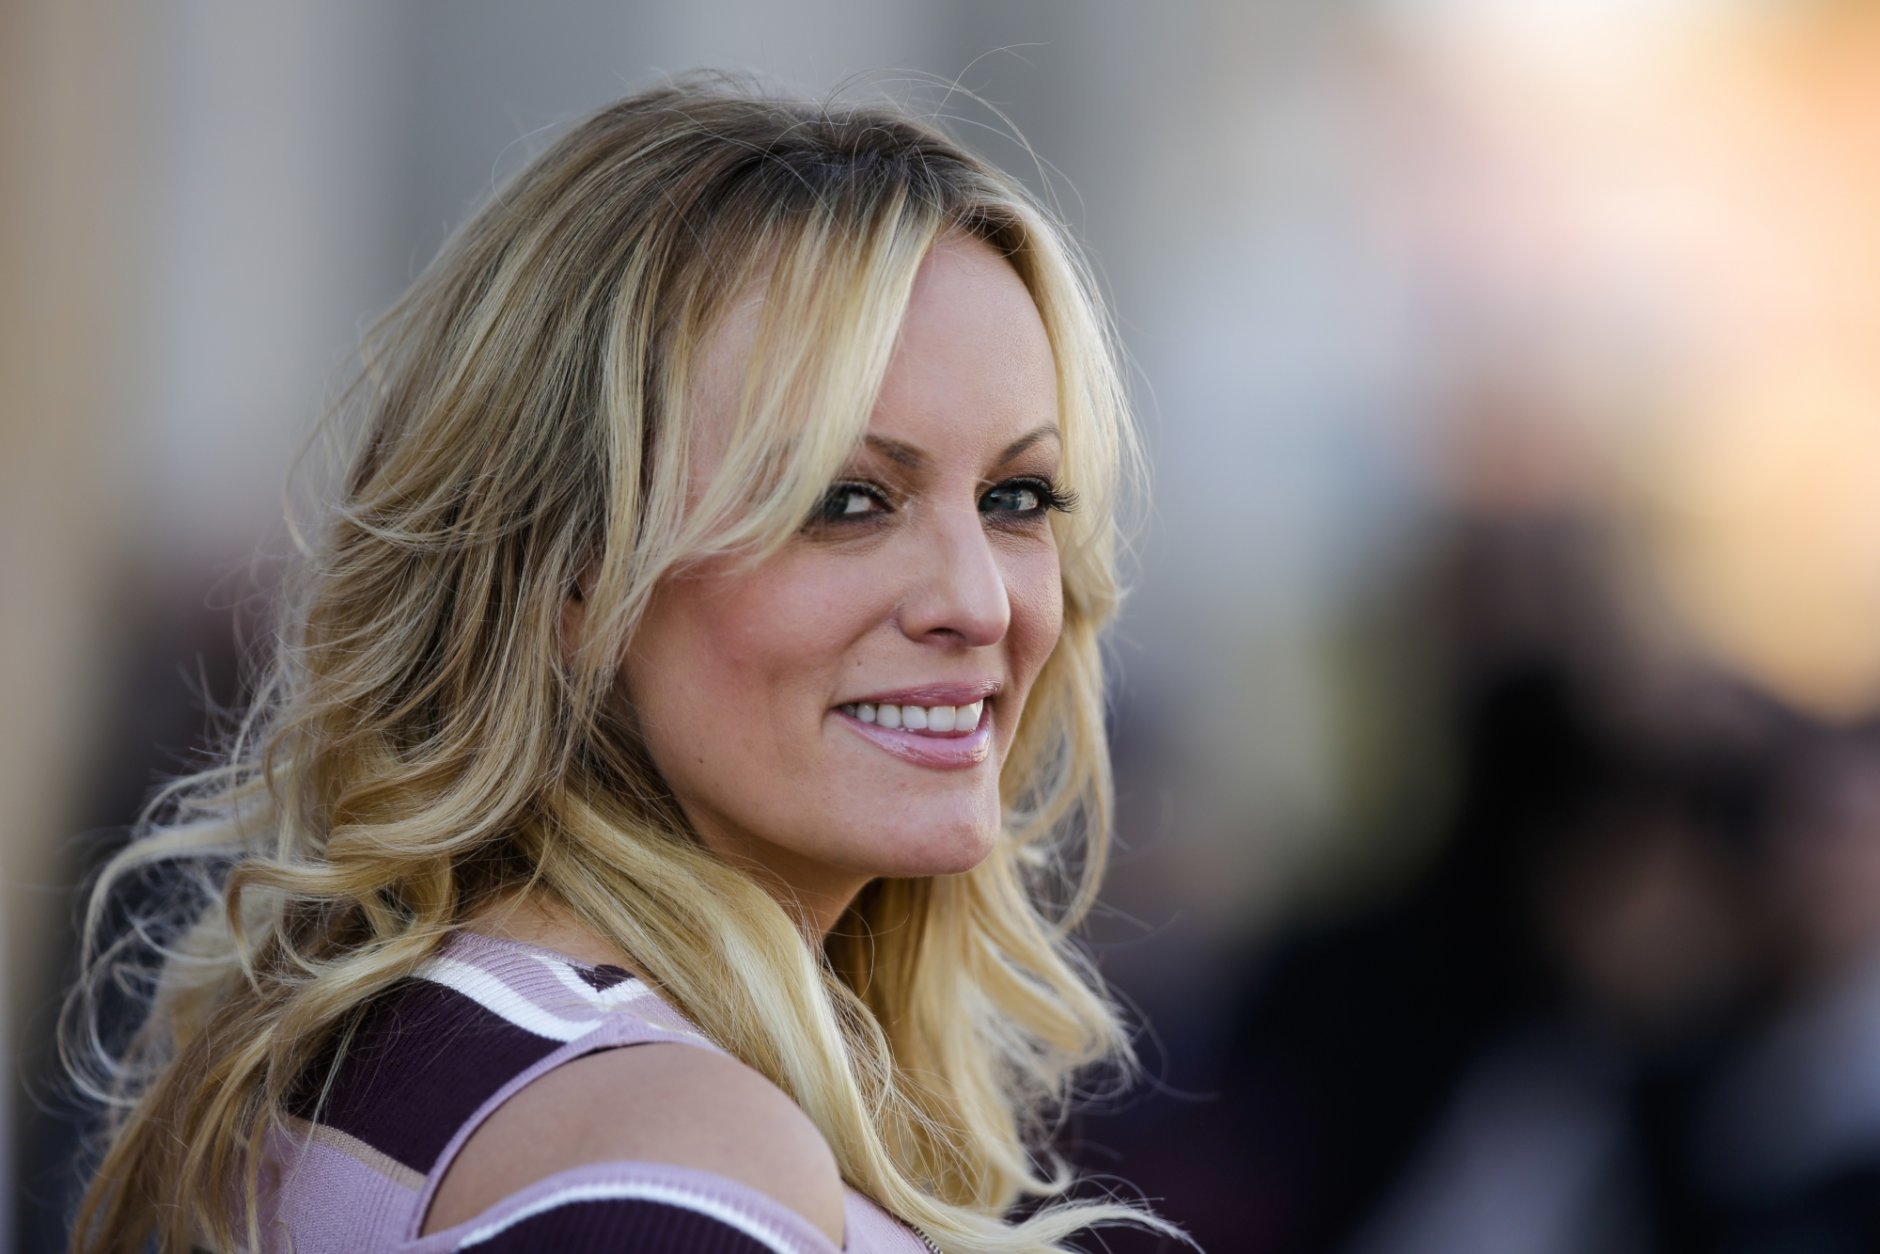 Adult film actress Stormy Daniels attends the opening of the adult entertainment fair 'Venus' in Berlin, Germany, Thursday, Oct. 11, 2018. (AP Photo/Markus Schreiber)